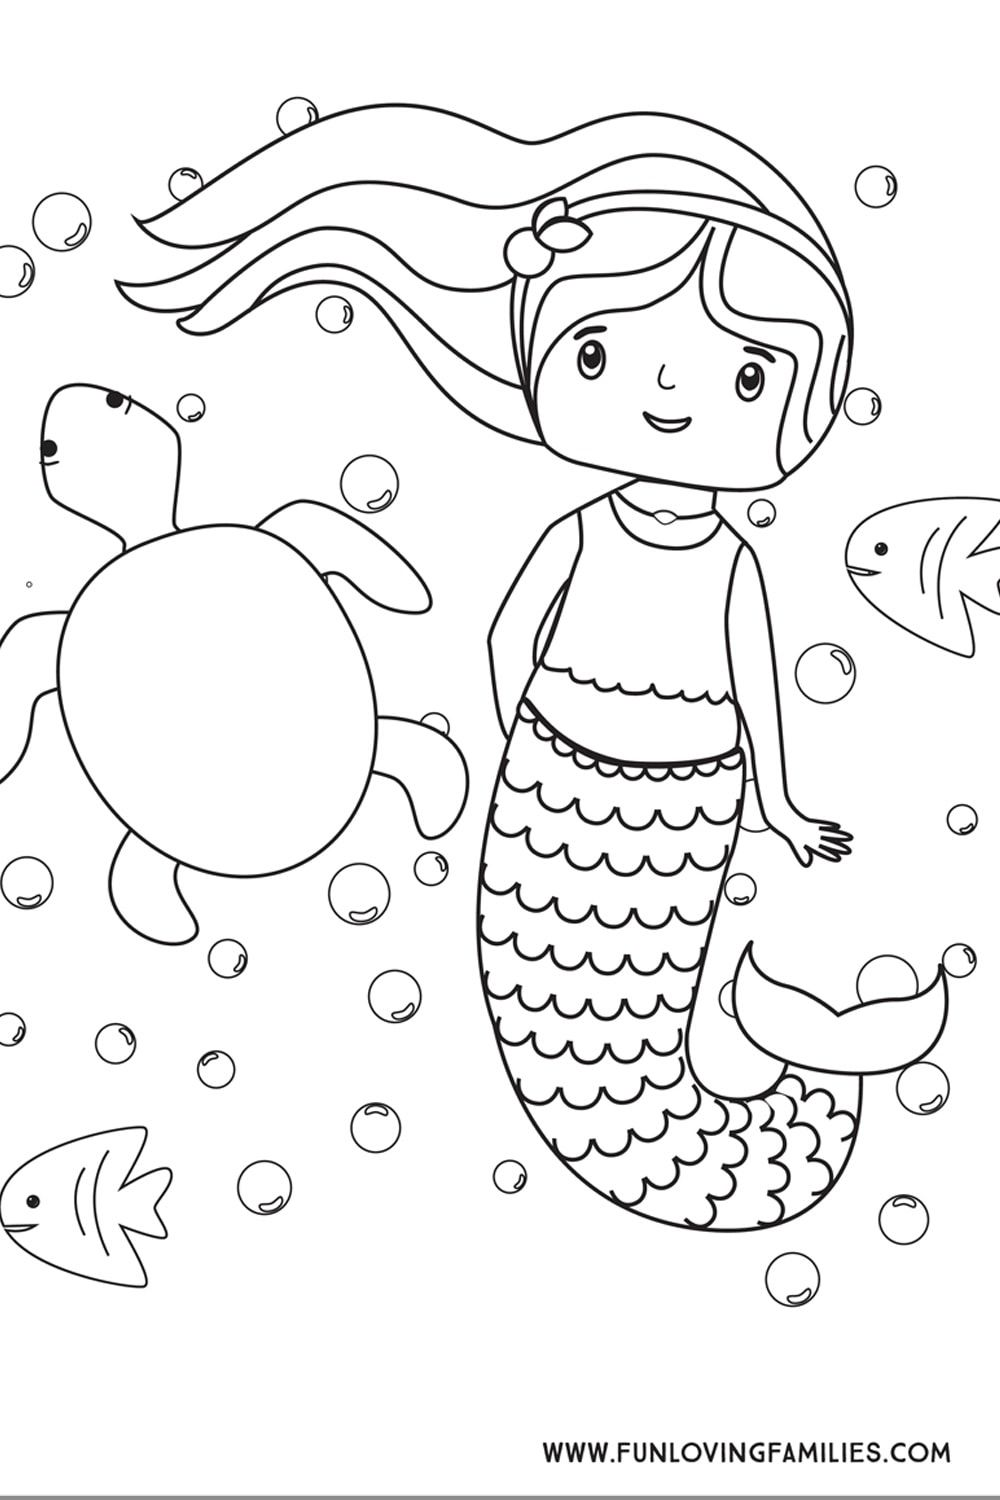 Mermaid Coloring Pages Free Printables Mermaid Coloring Pages